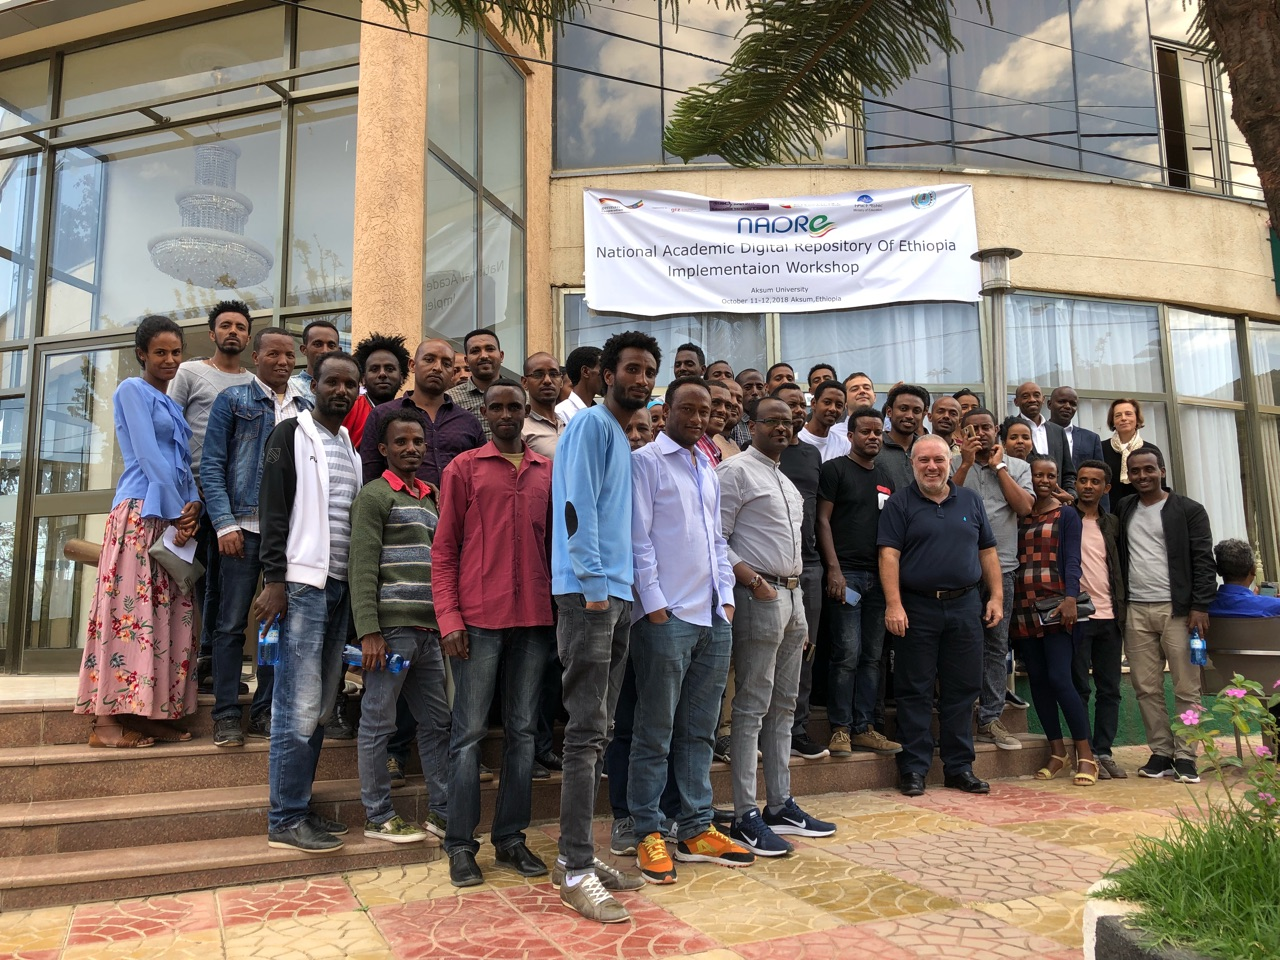 Group photograph at the Second NADRE Training Workshop - National